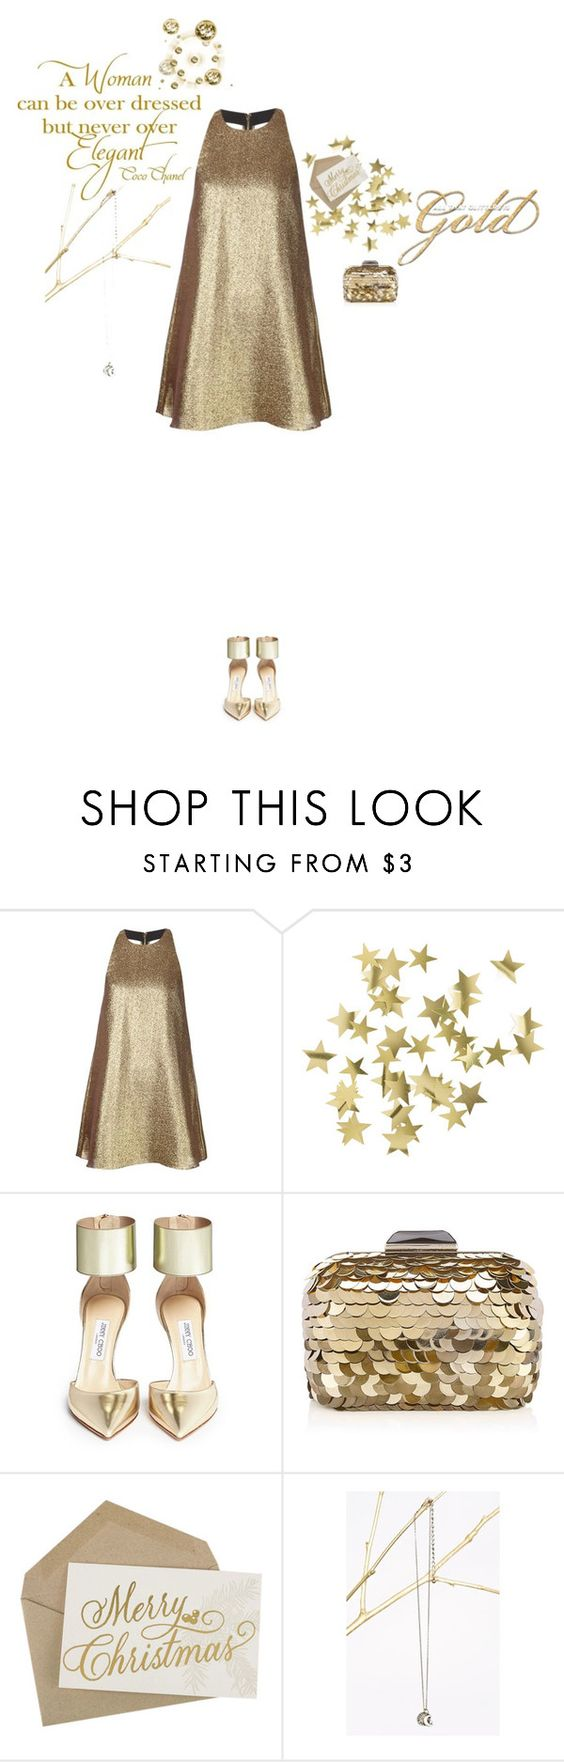 """""""SM7 Nº16 Open Back"""" by belldraw ❤ liked on Polyvore featuring Alice + Olivia, H&M, Jimmy Choo, Chanel, stylemission and SM7"""